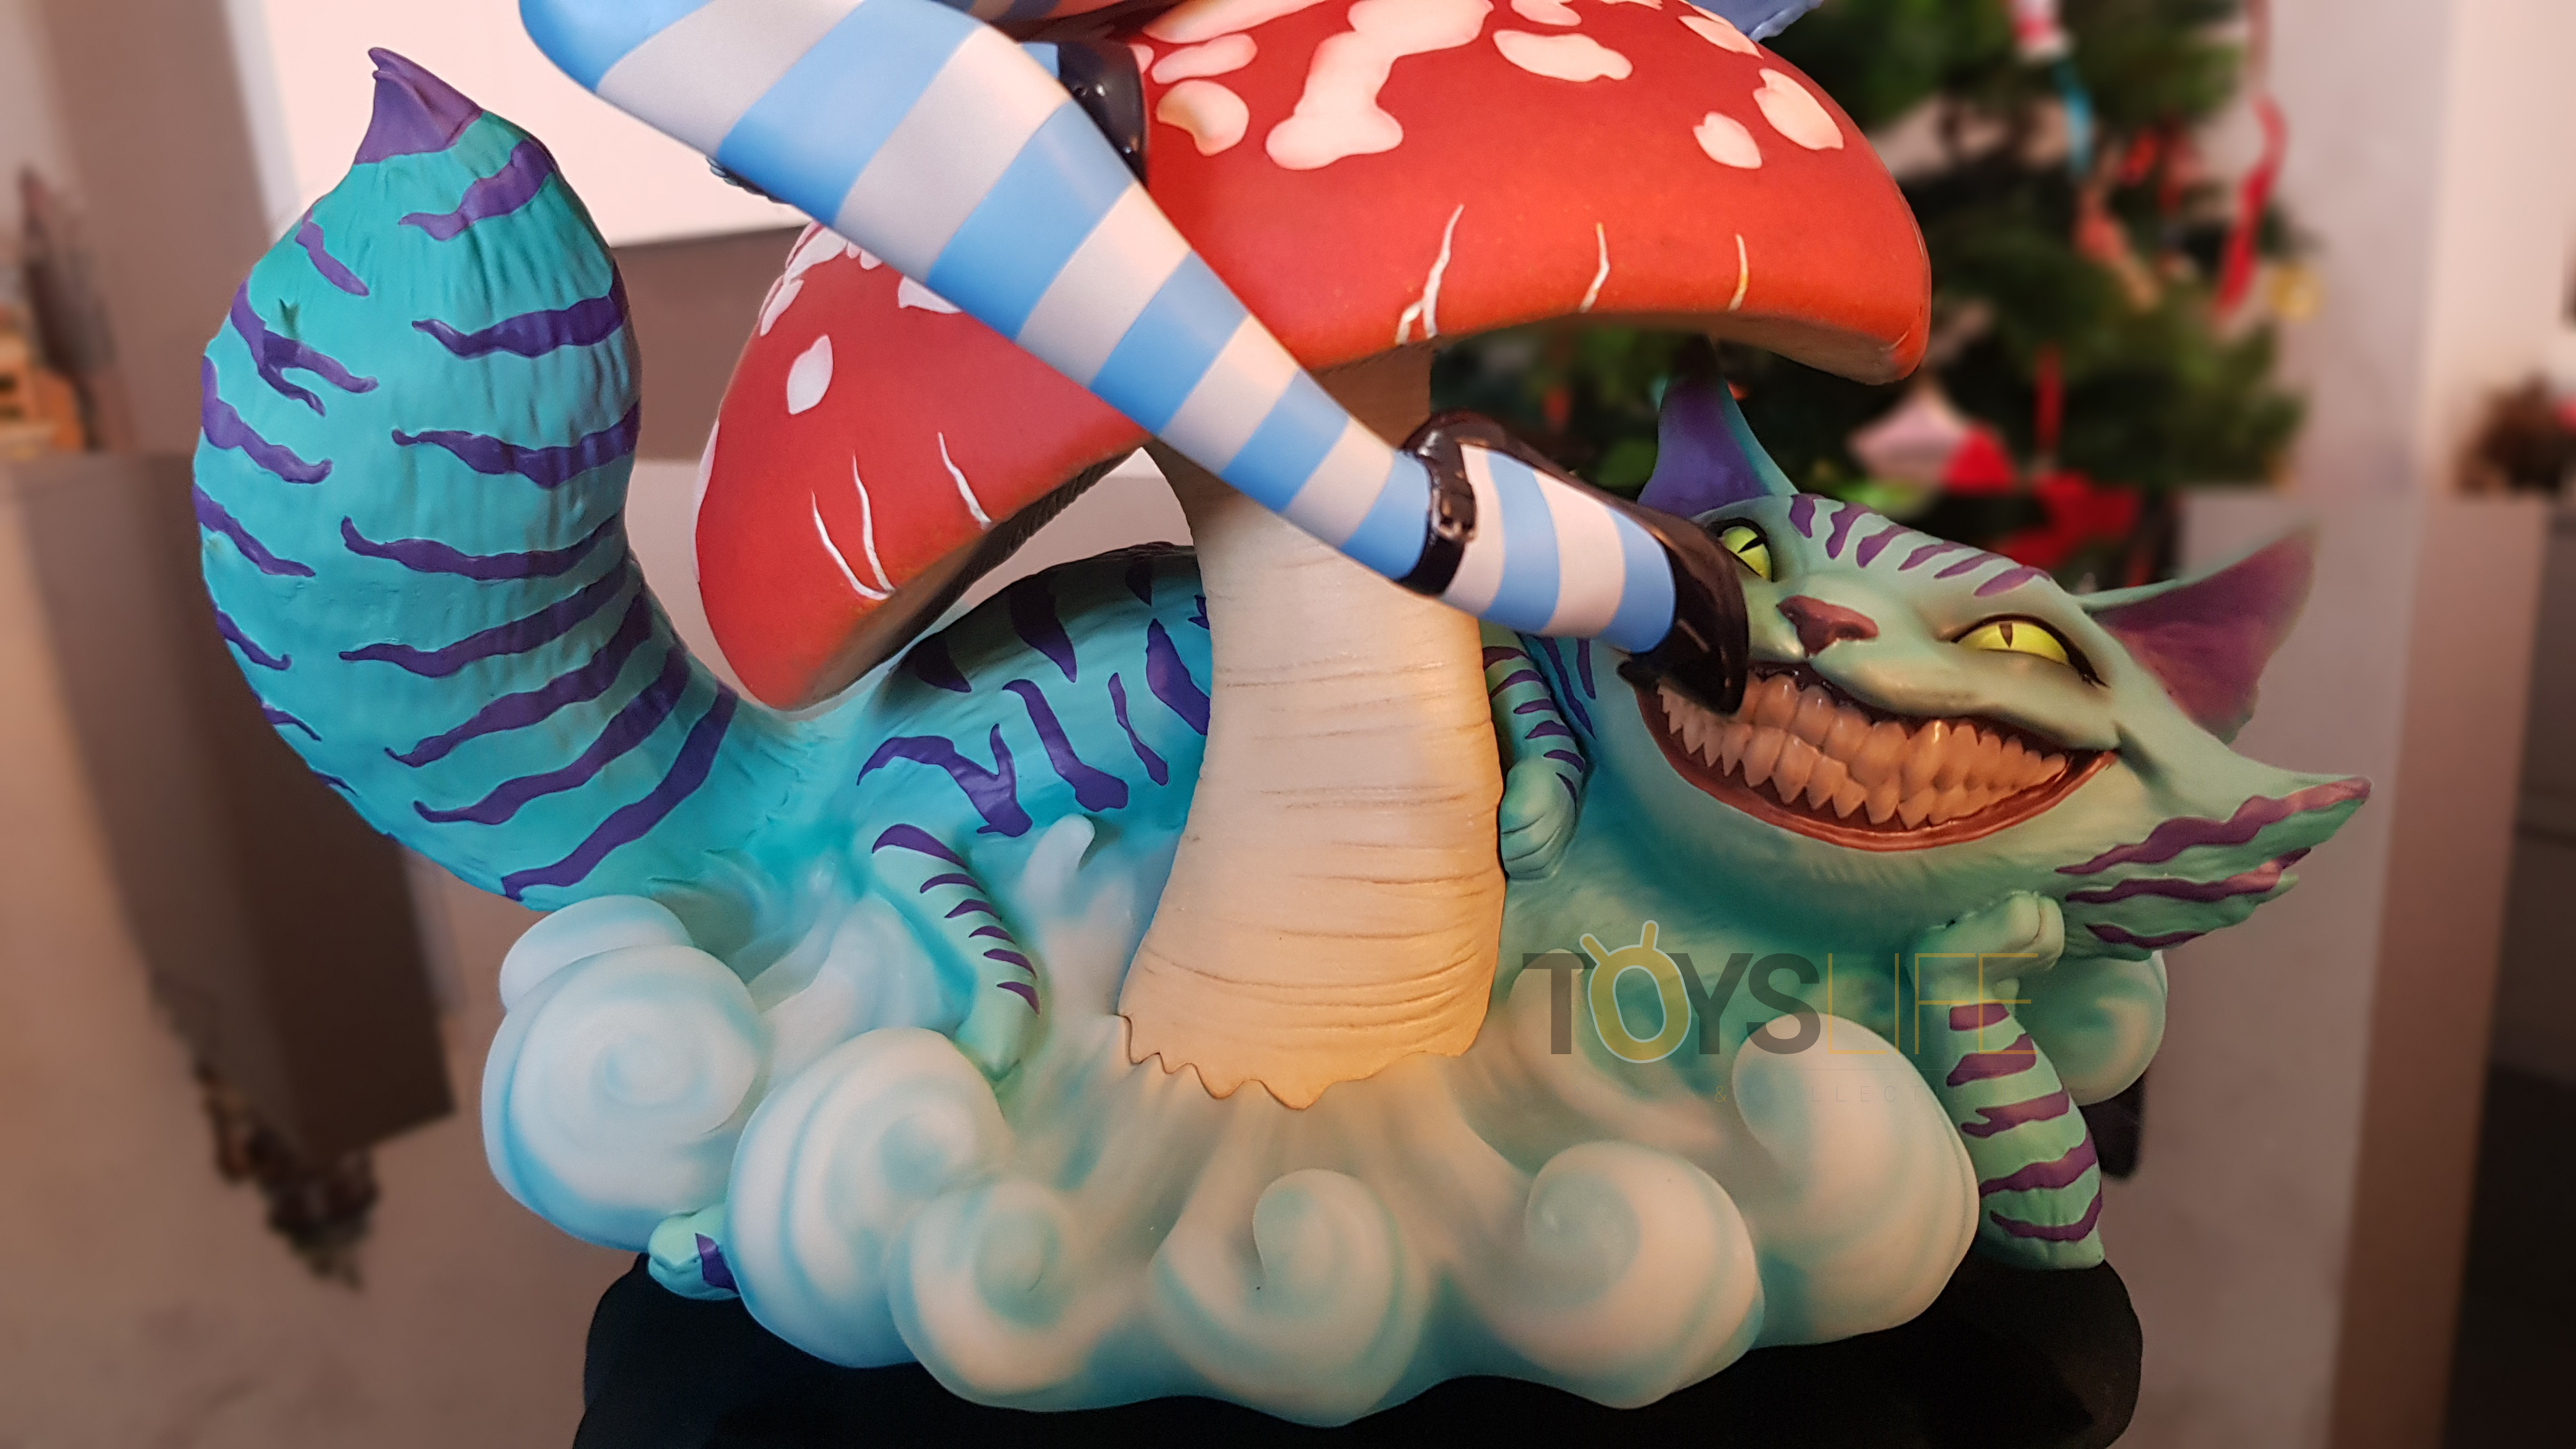 sideshow-fairytale-fantasies-jscampbell-alice-exclusive-statue-toyslife-review-17